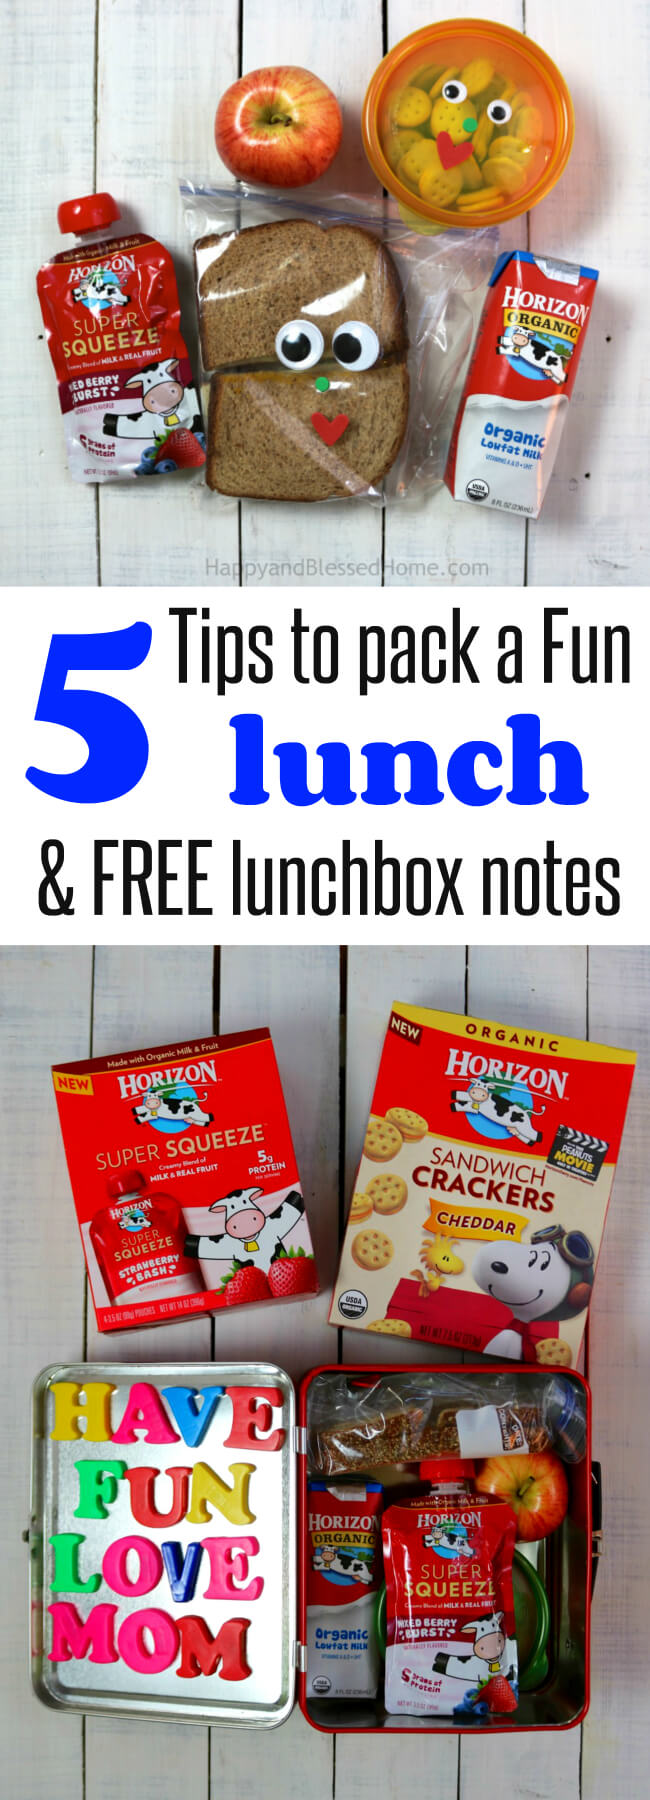 Such great and simple ideas for packing a kid's lunch - plus 15 different lunchbox note designs - how clever!